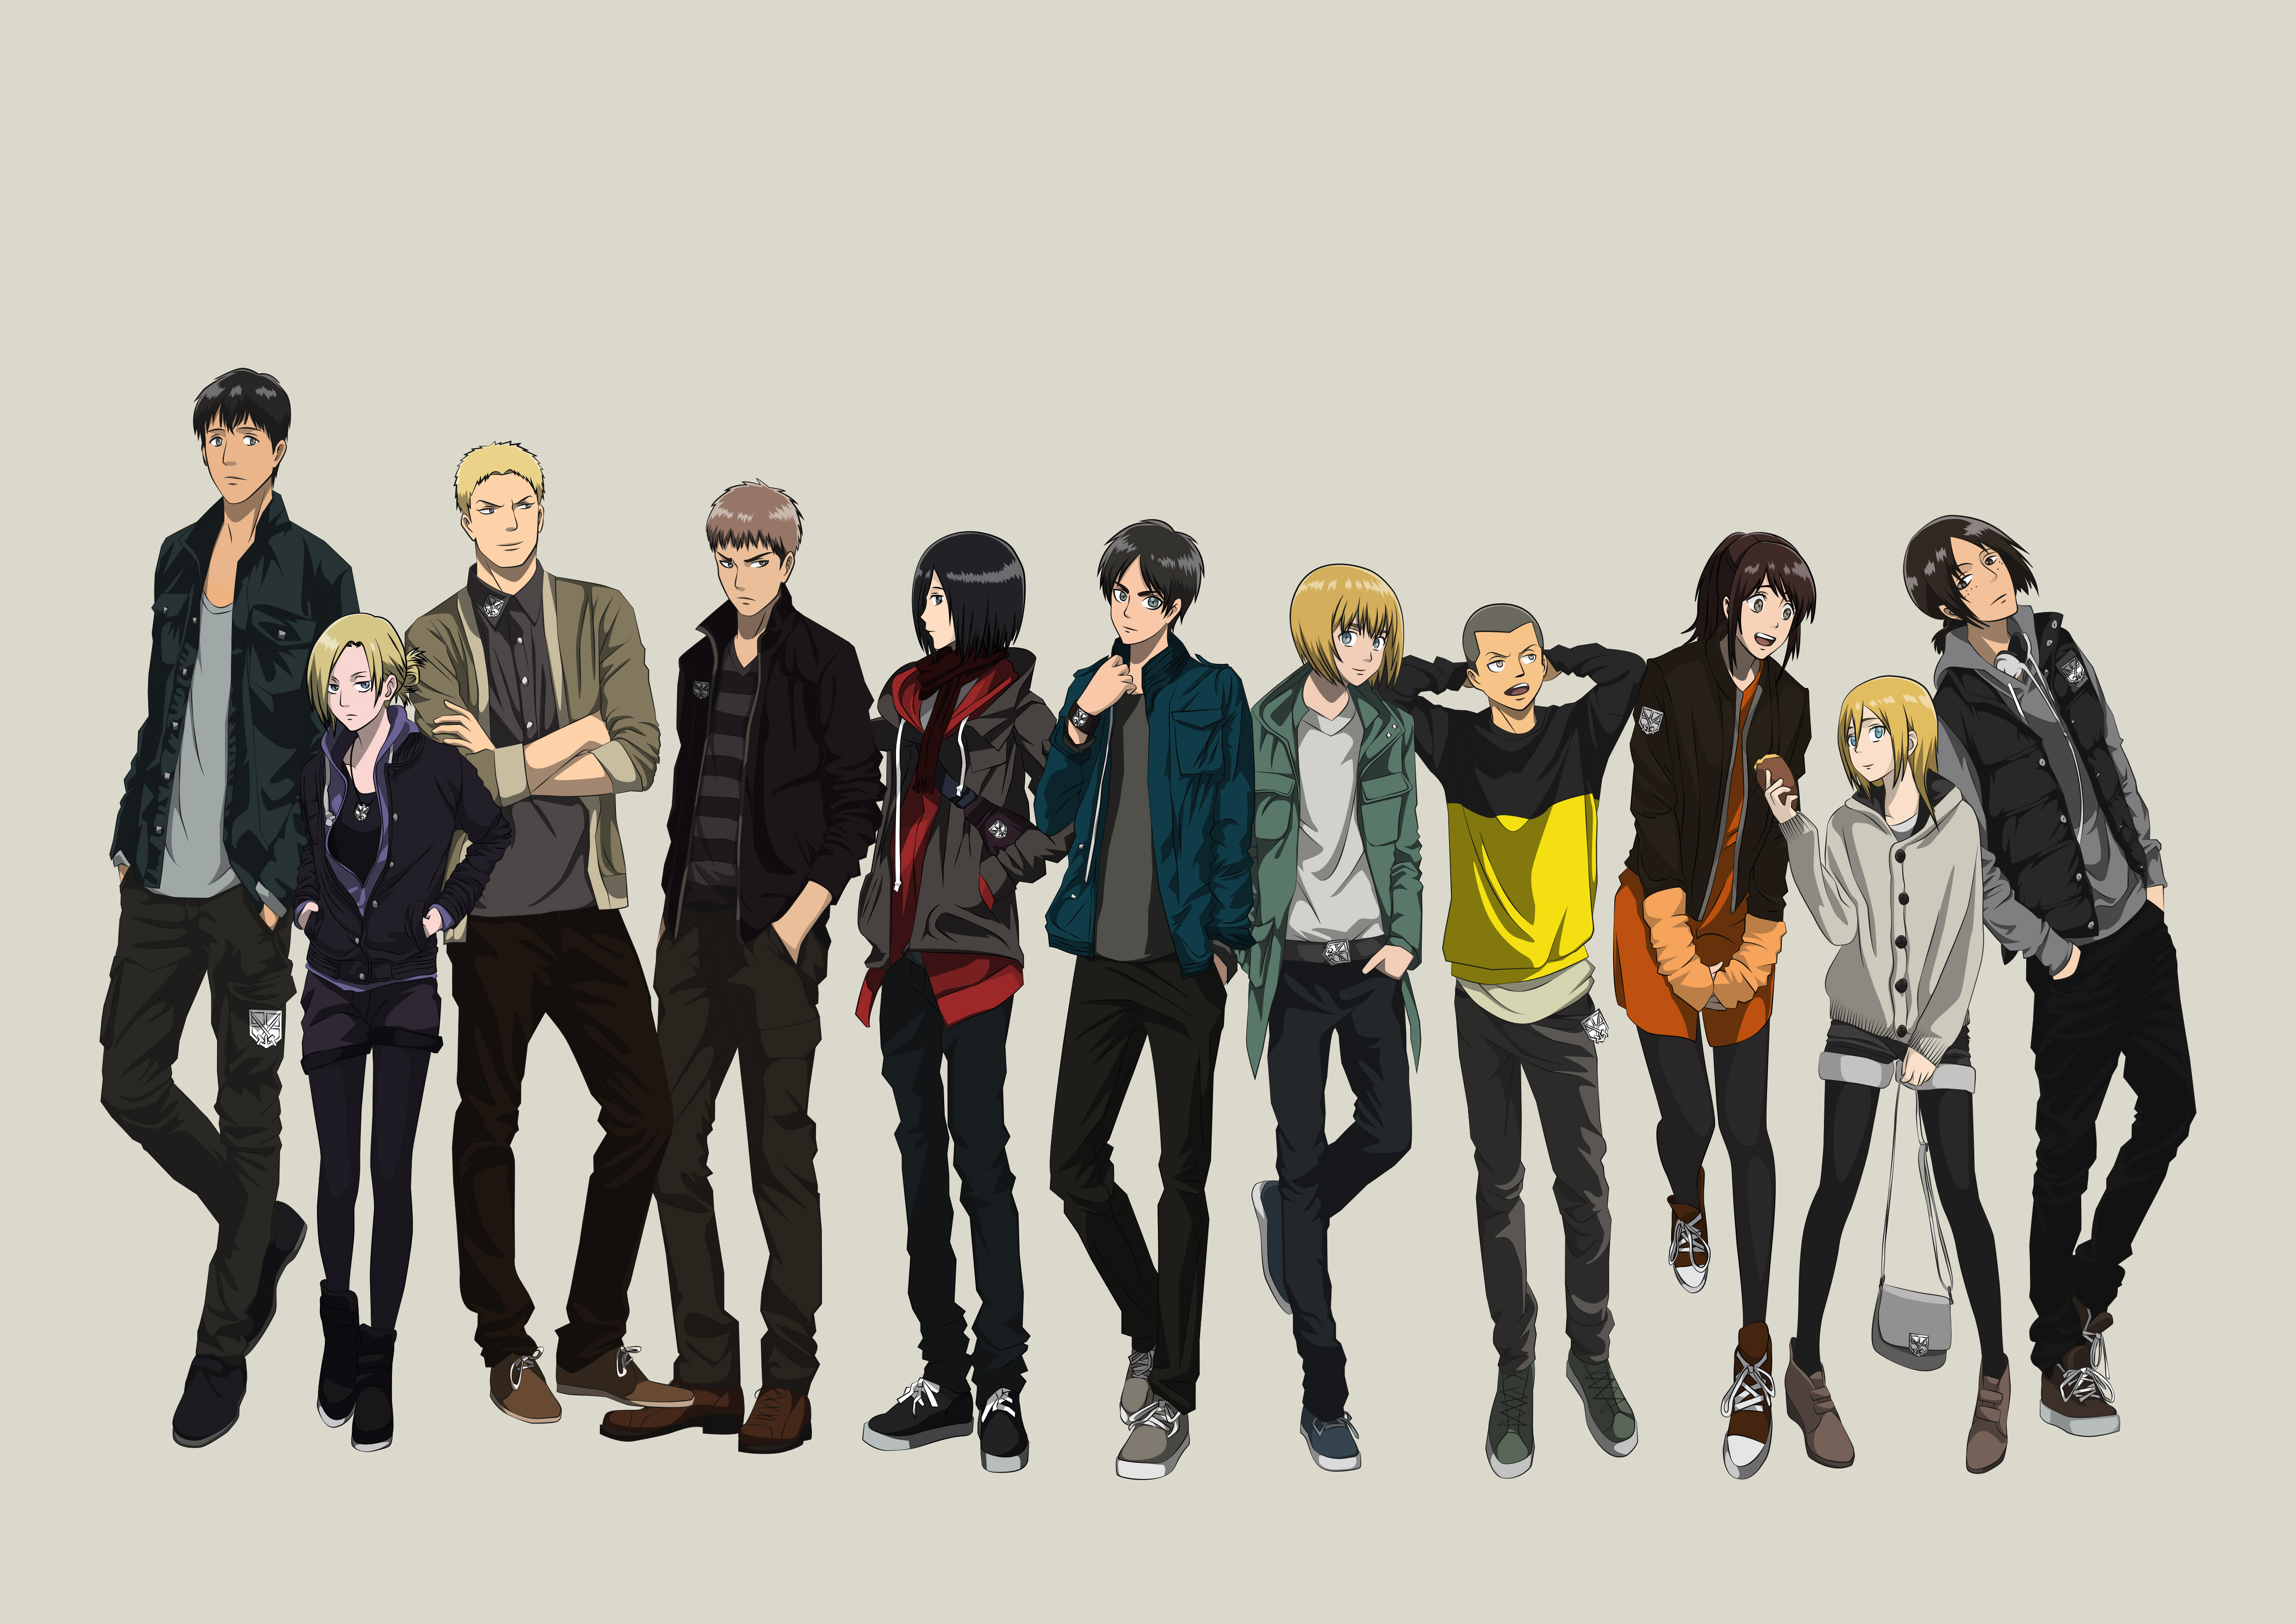 Anime Characters 175 Cm : Th trainees squad attack on titan image